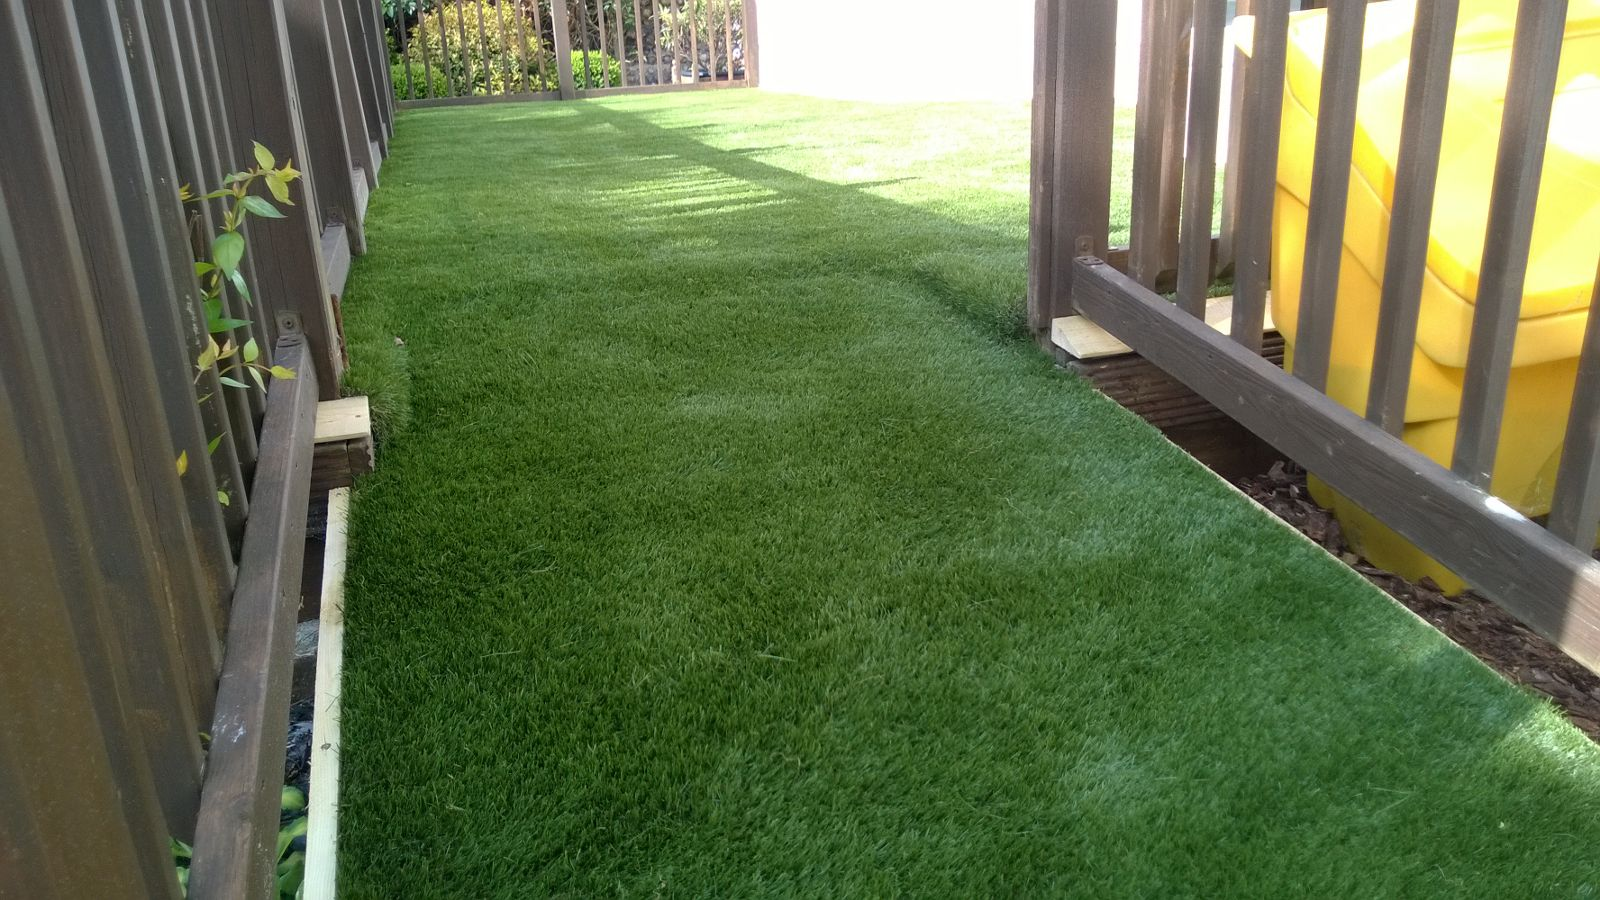 Artificial grass on decking by sussex artificial grass company for Garden decking and grass